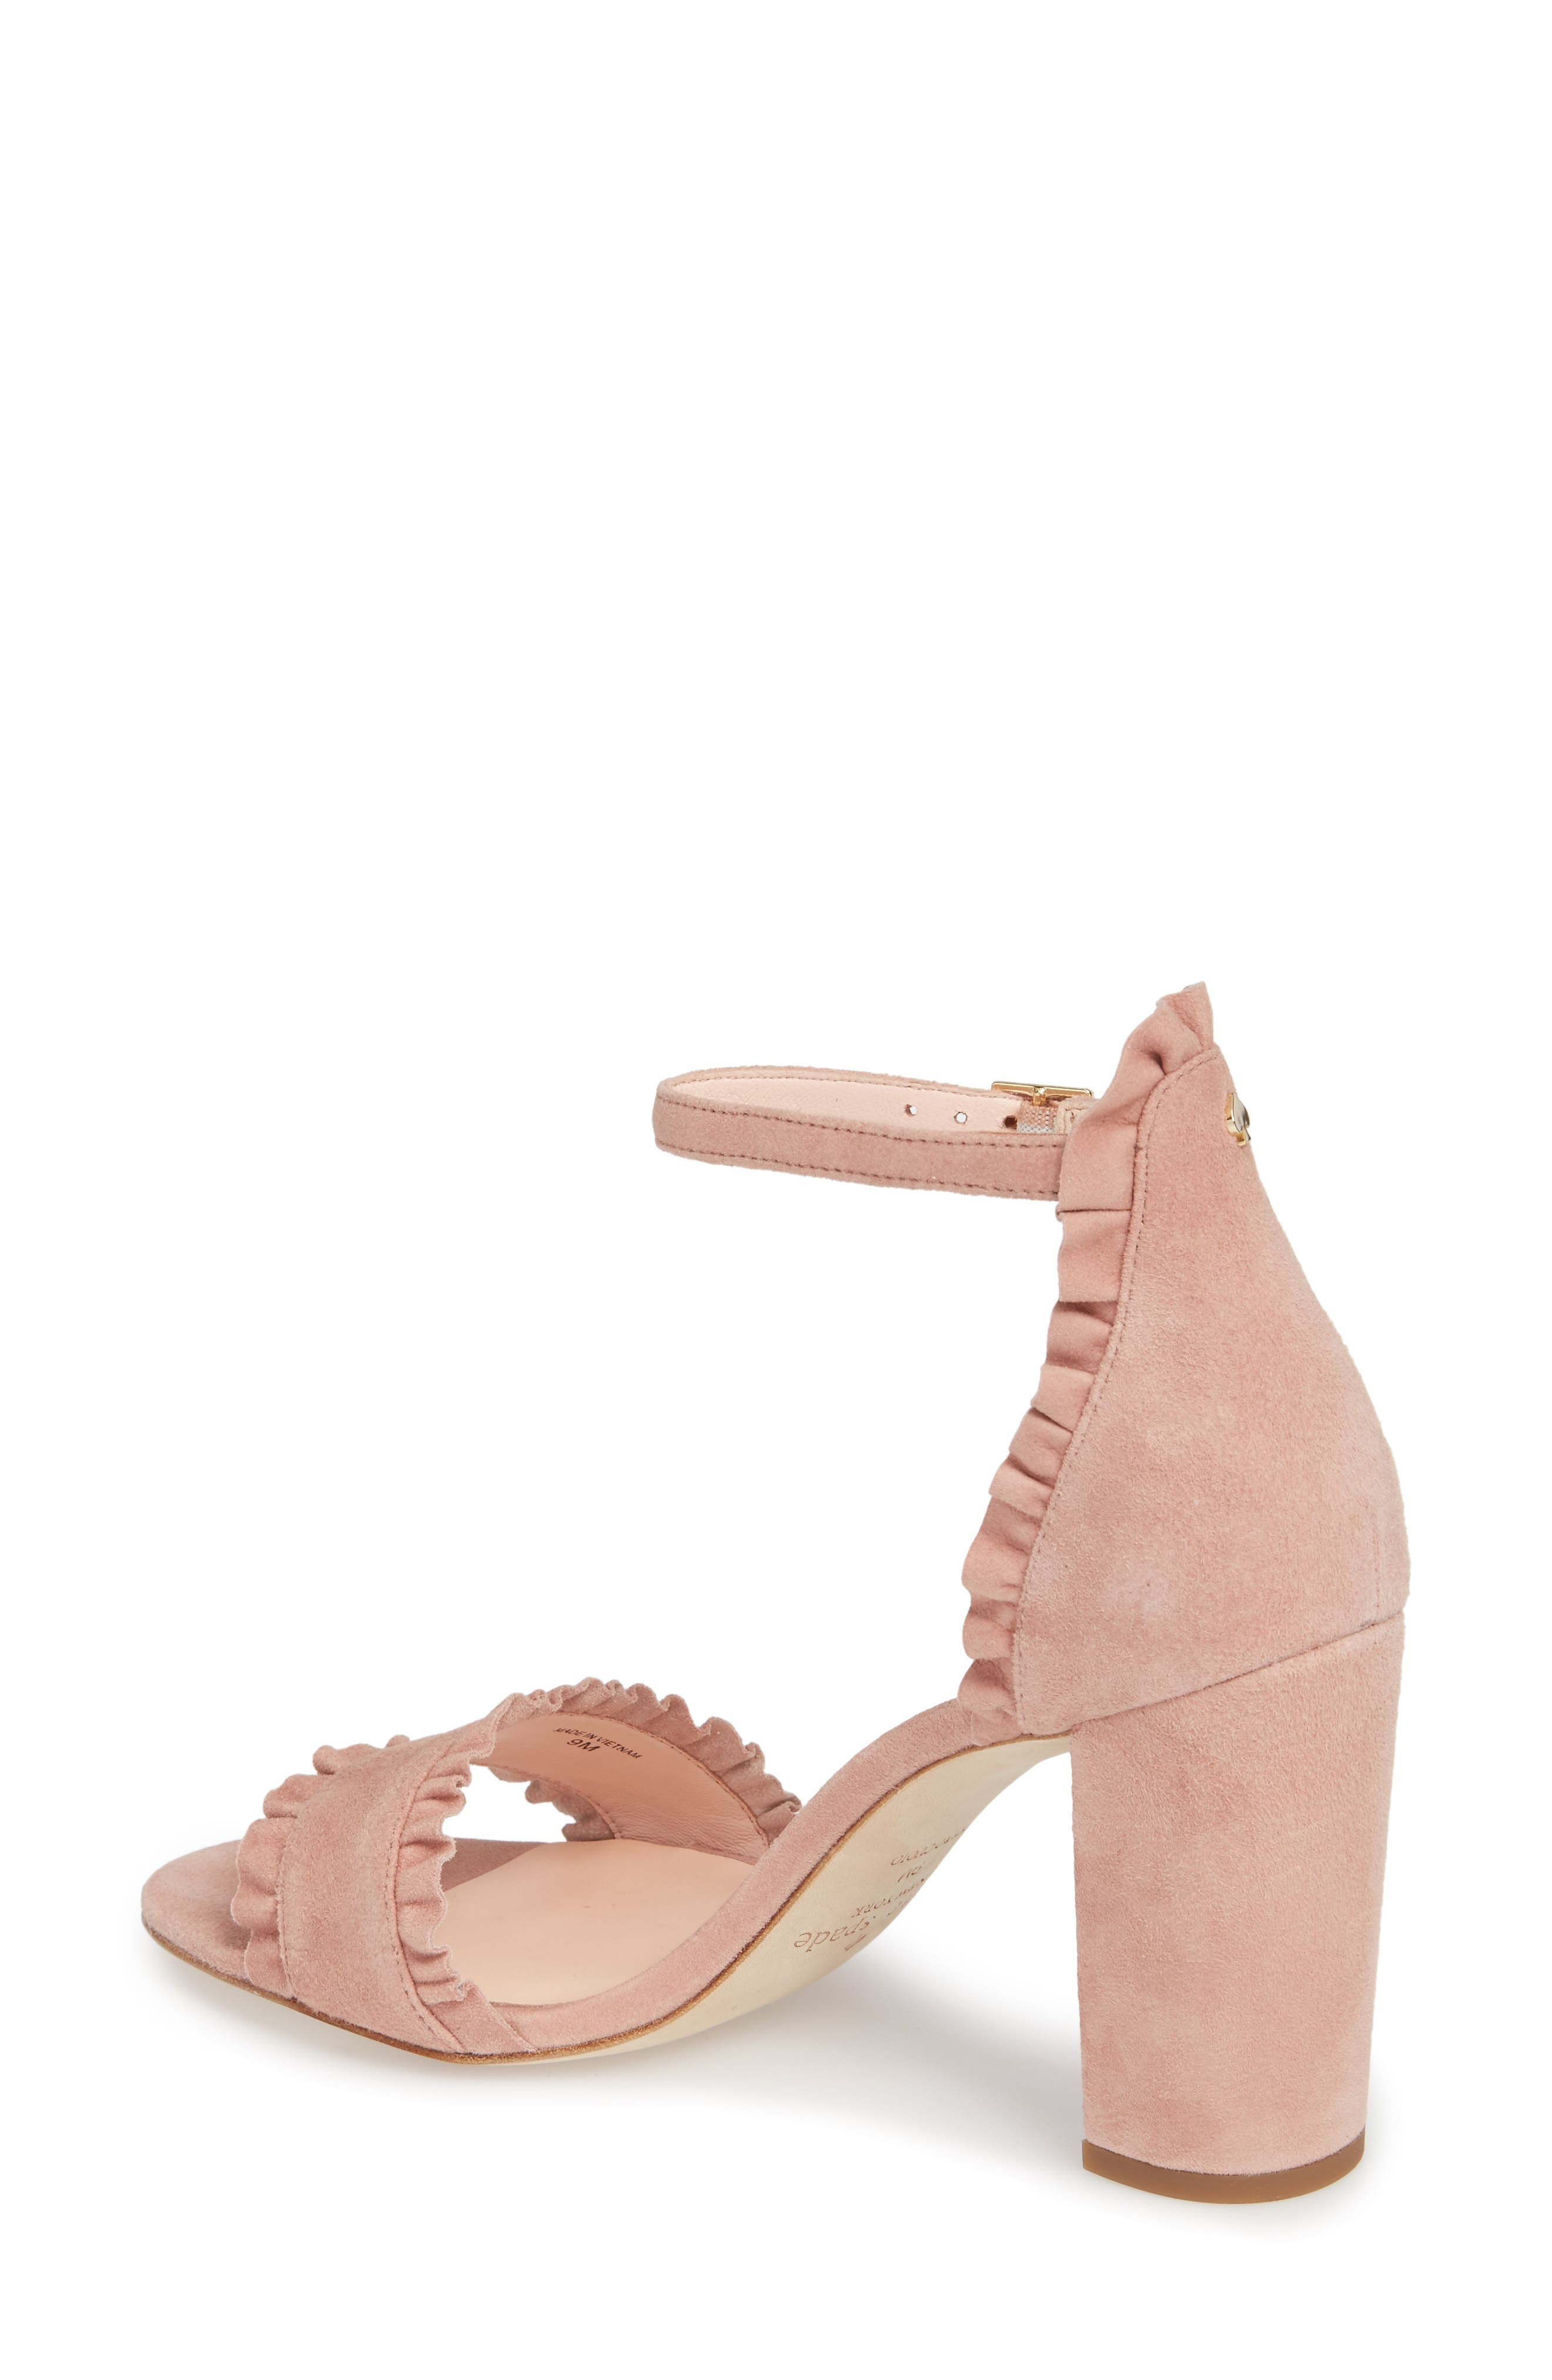 odele ruffle sandal,                             Alternate thumbnail 4, color,